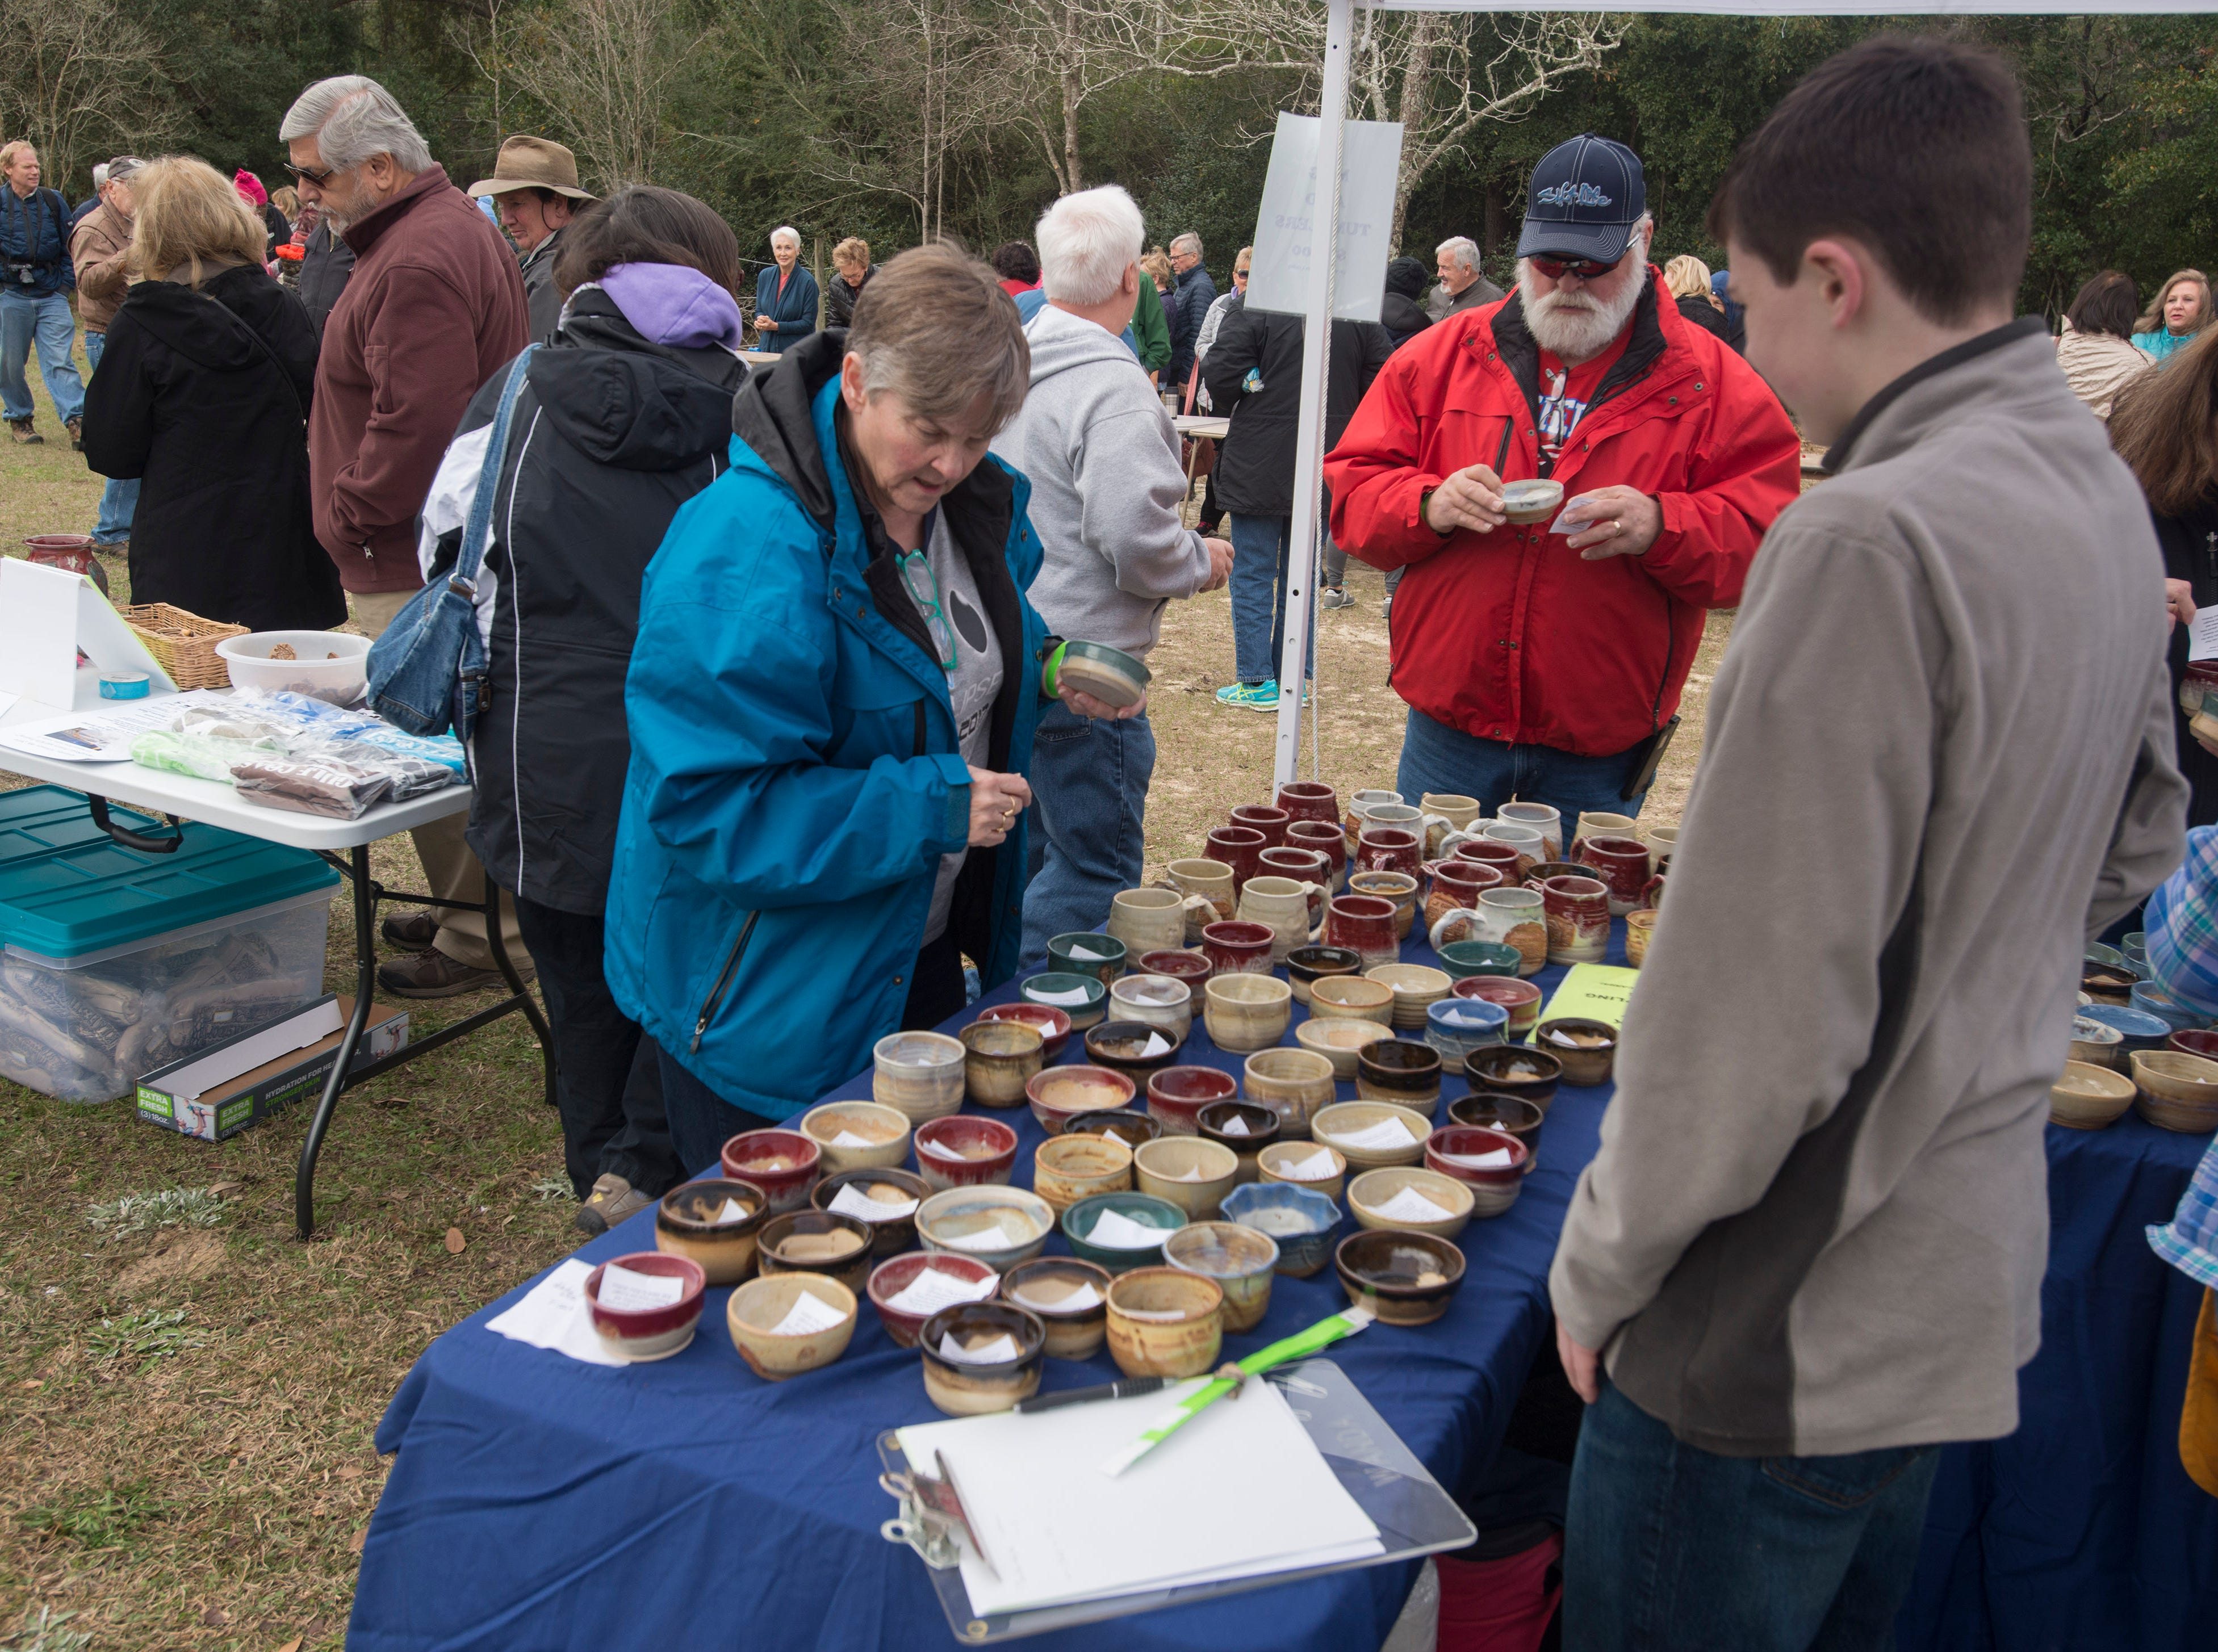 Pottery for sale Saturday, February 9, 2019, during the 14th annual Woodstoke Pottery and Kiln Festival at Holly Hill Pottery in Navarre.